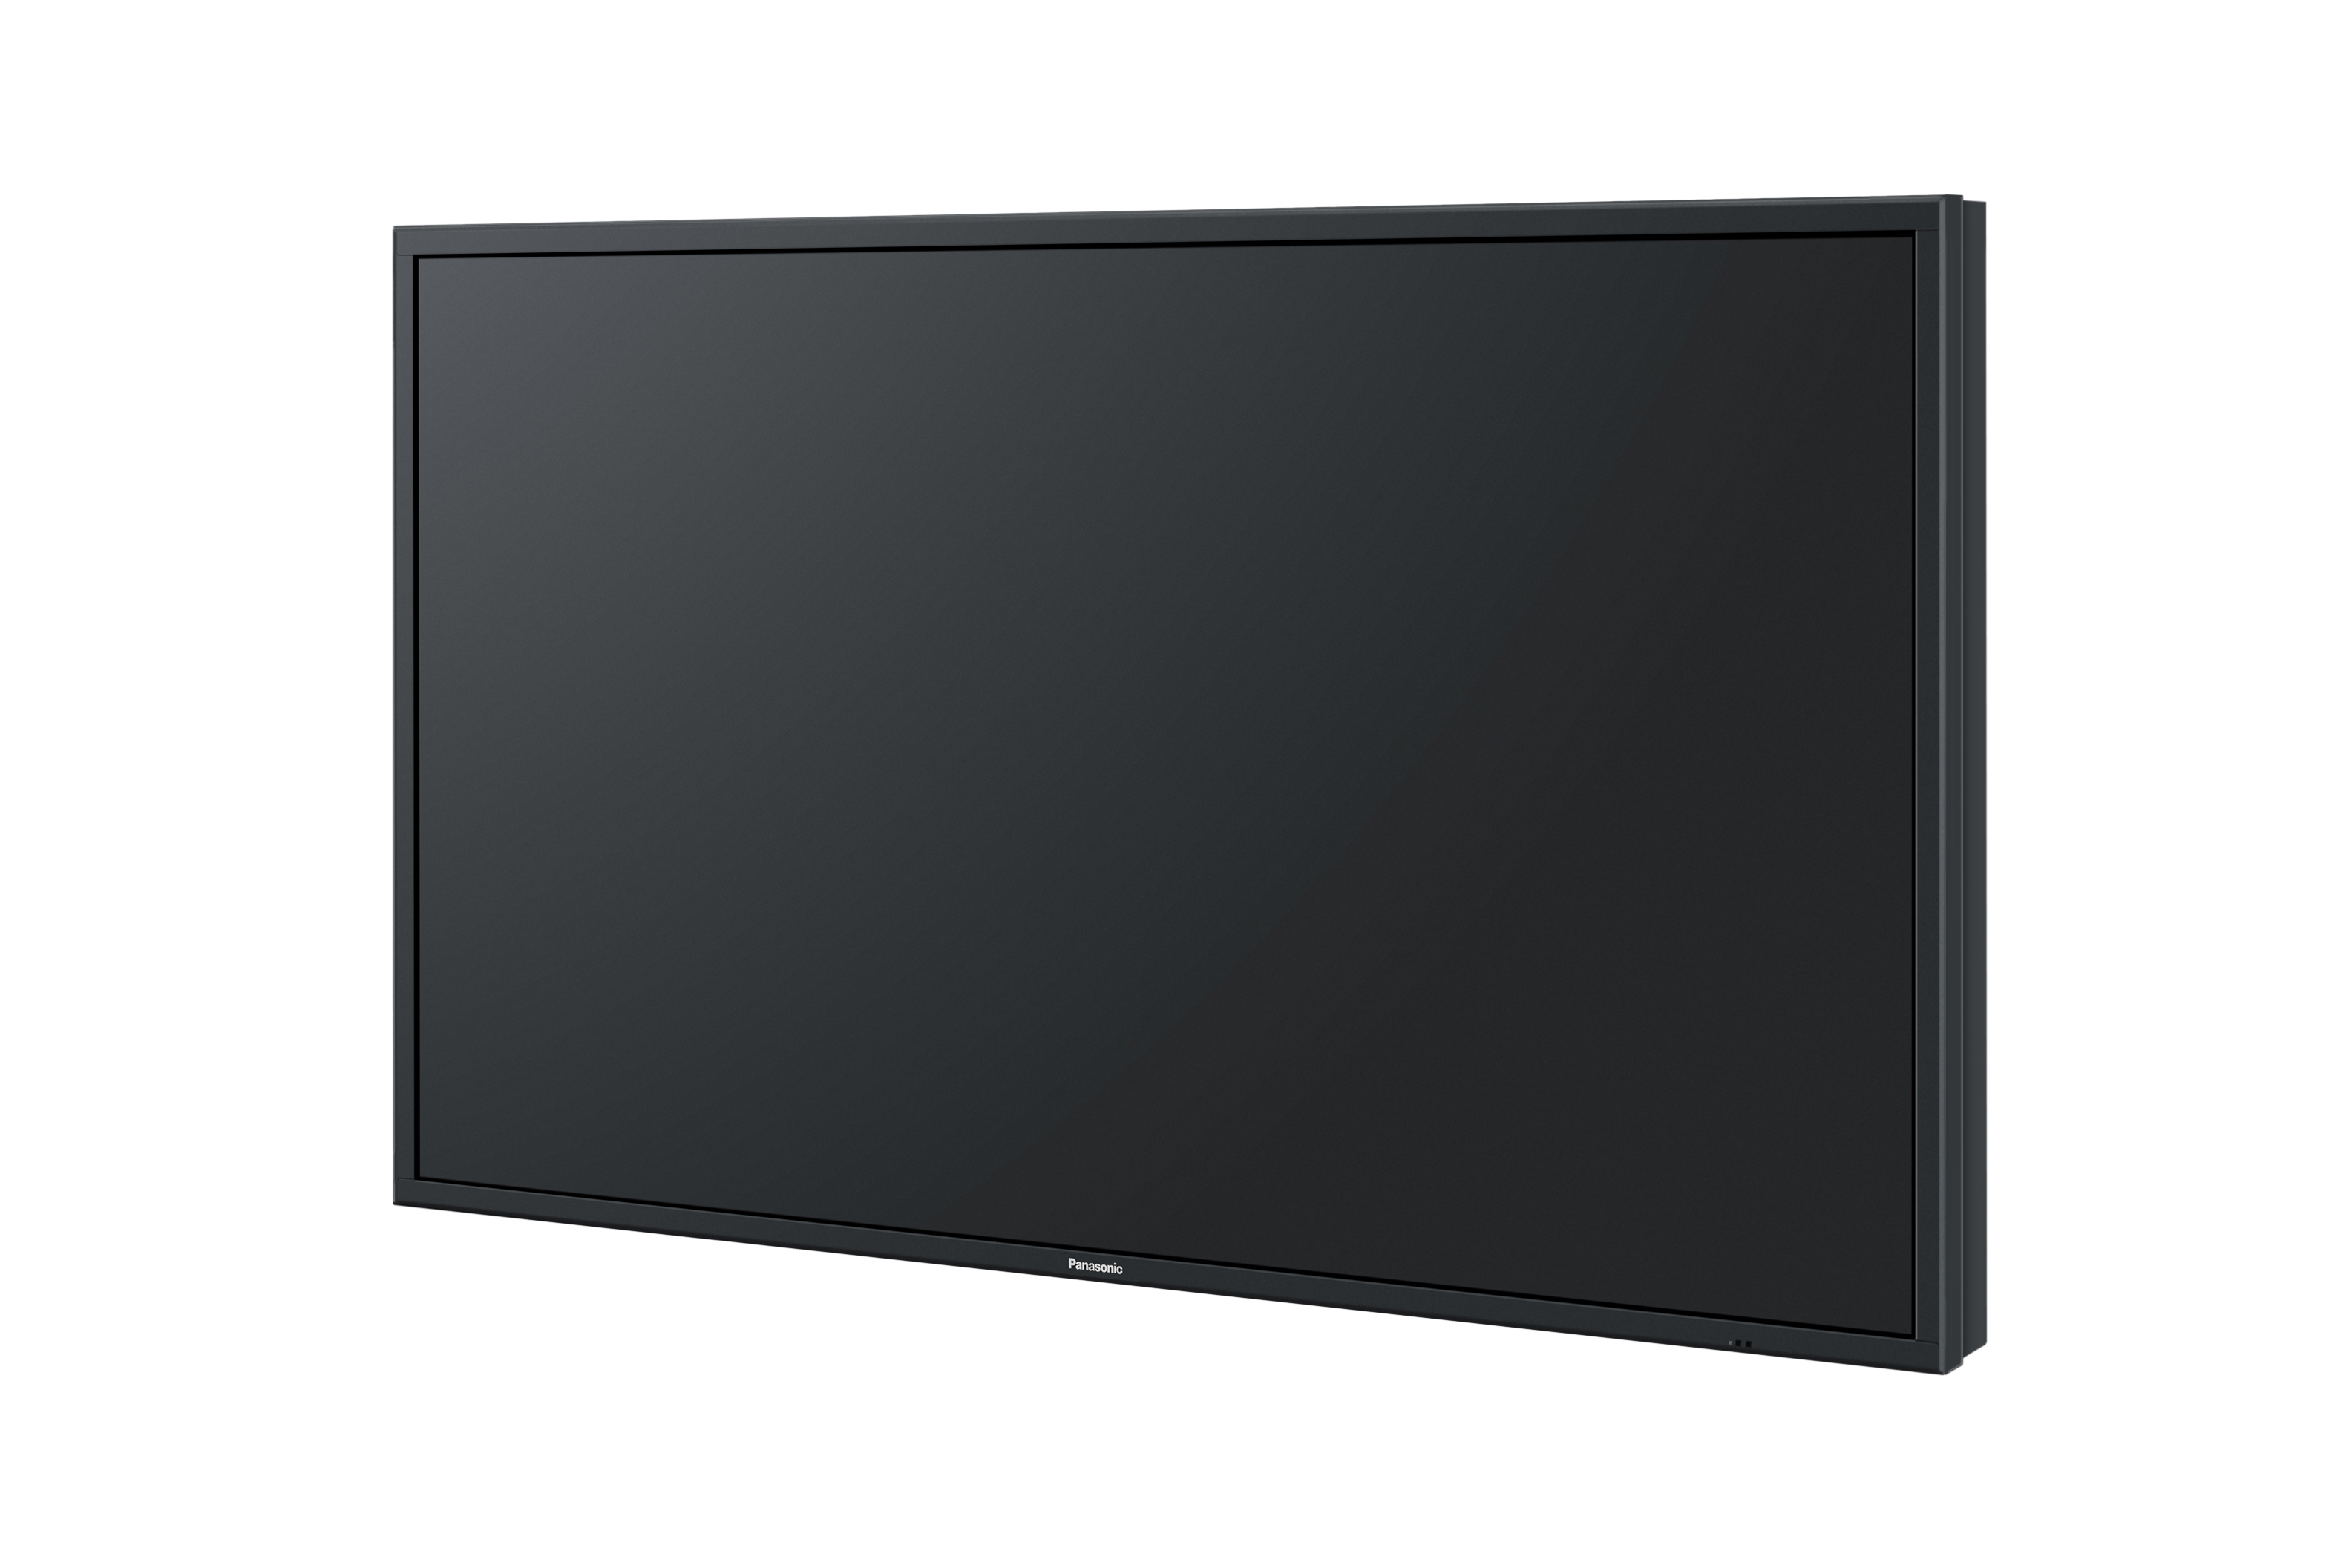 Panasonic TH-84LQ70W Professional 4K Large Display